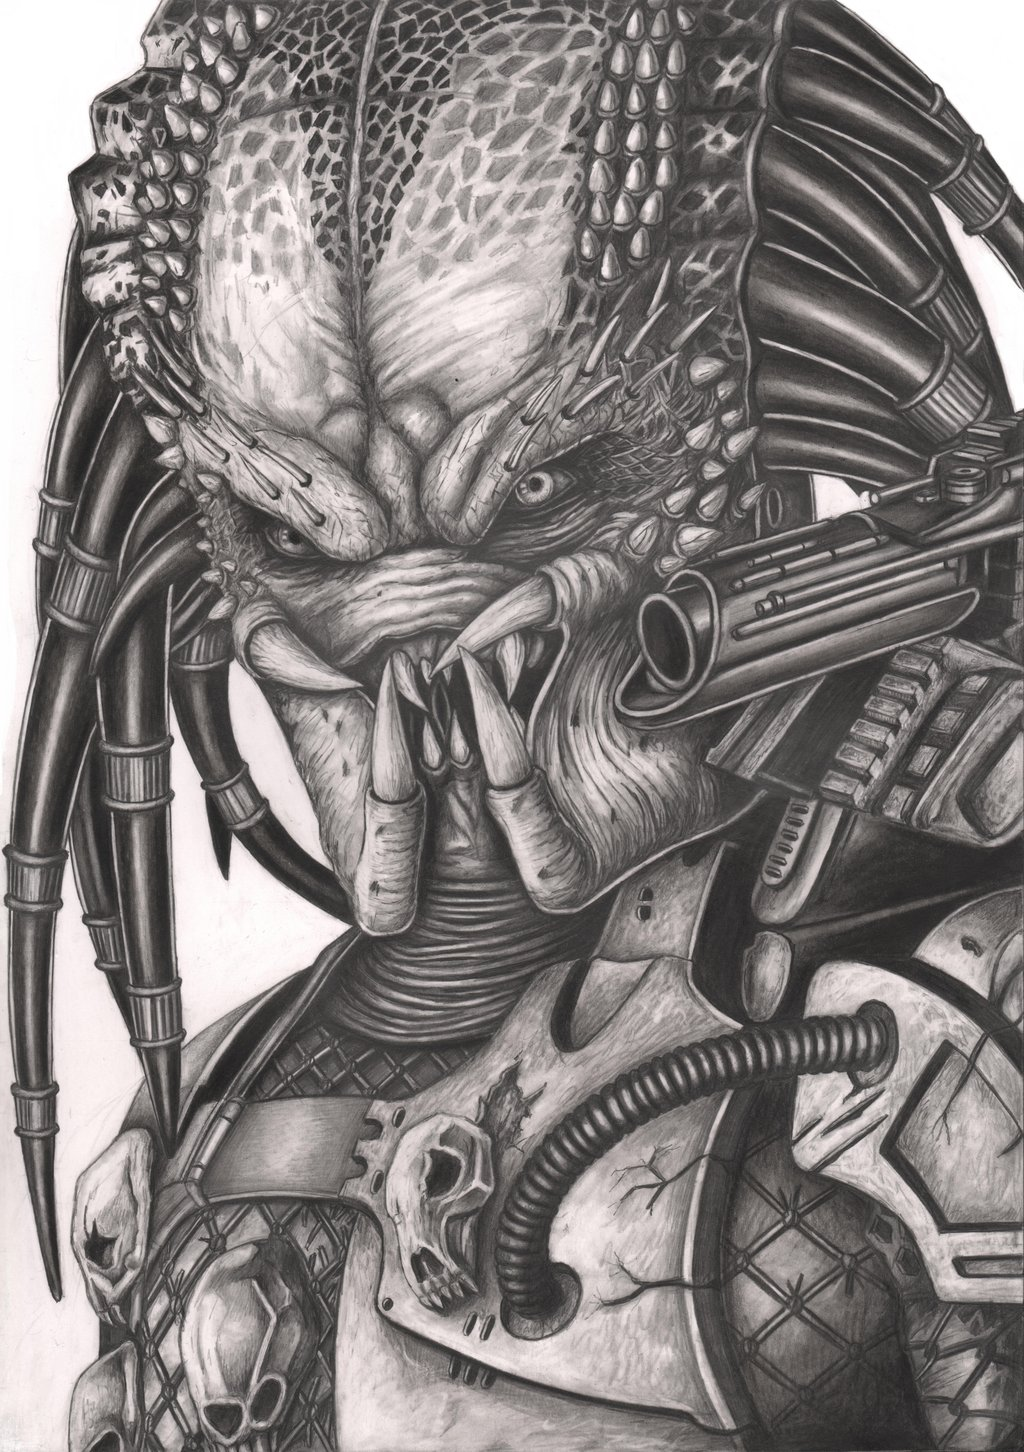 Drawn predator tracker Predator pic/pic  Best ever